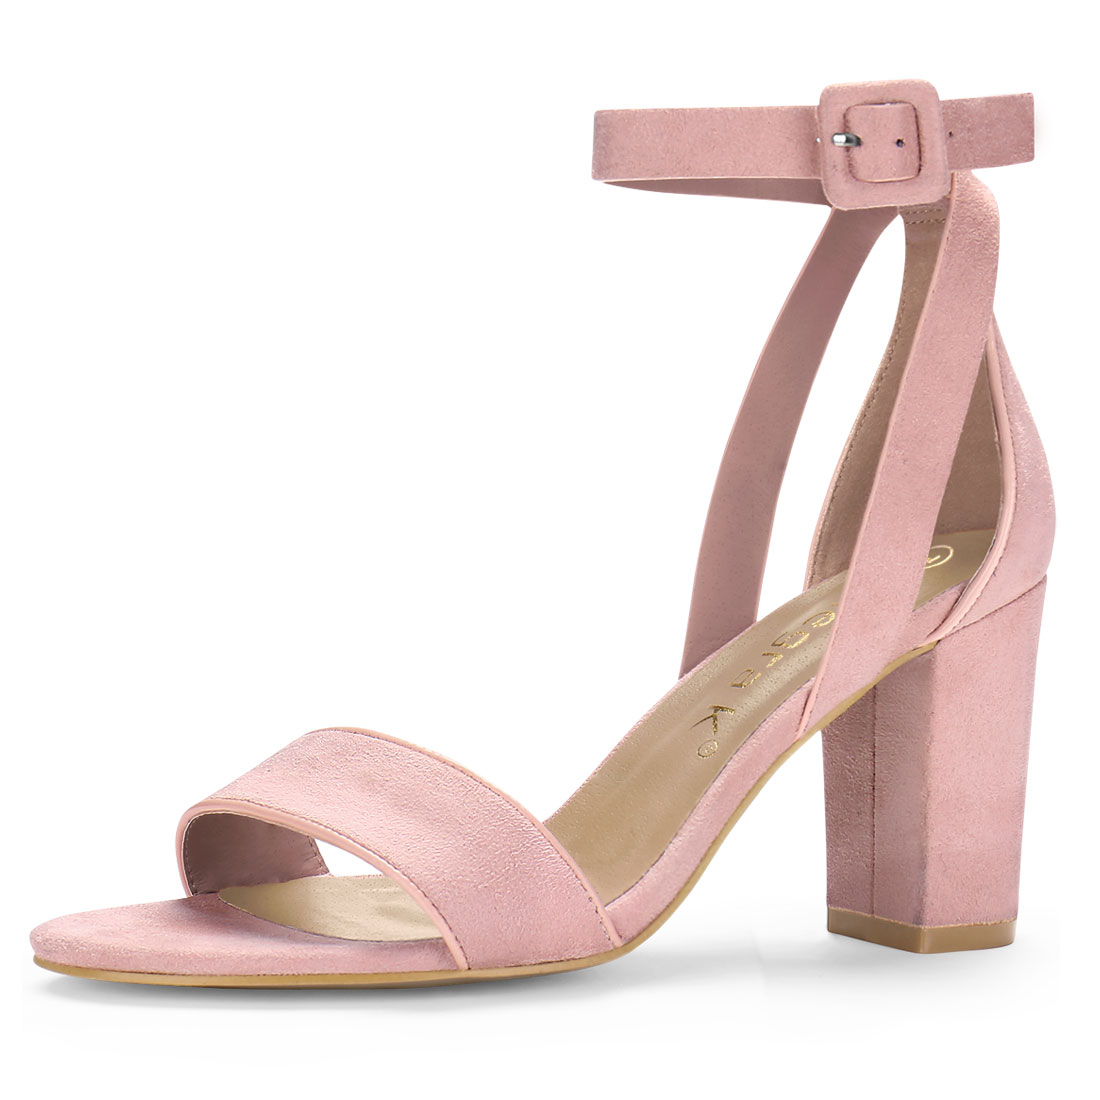 Women PU Panel Piped Chunky Heel Ankle Strap Sandals Light Pink US 7